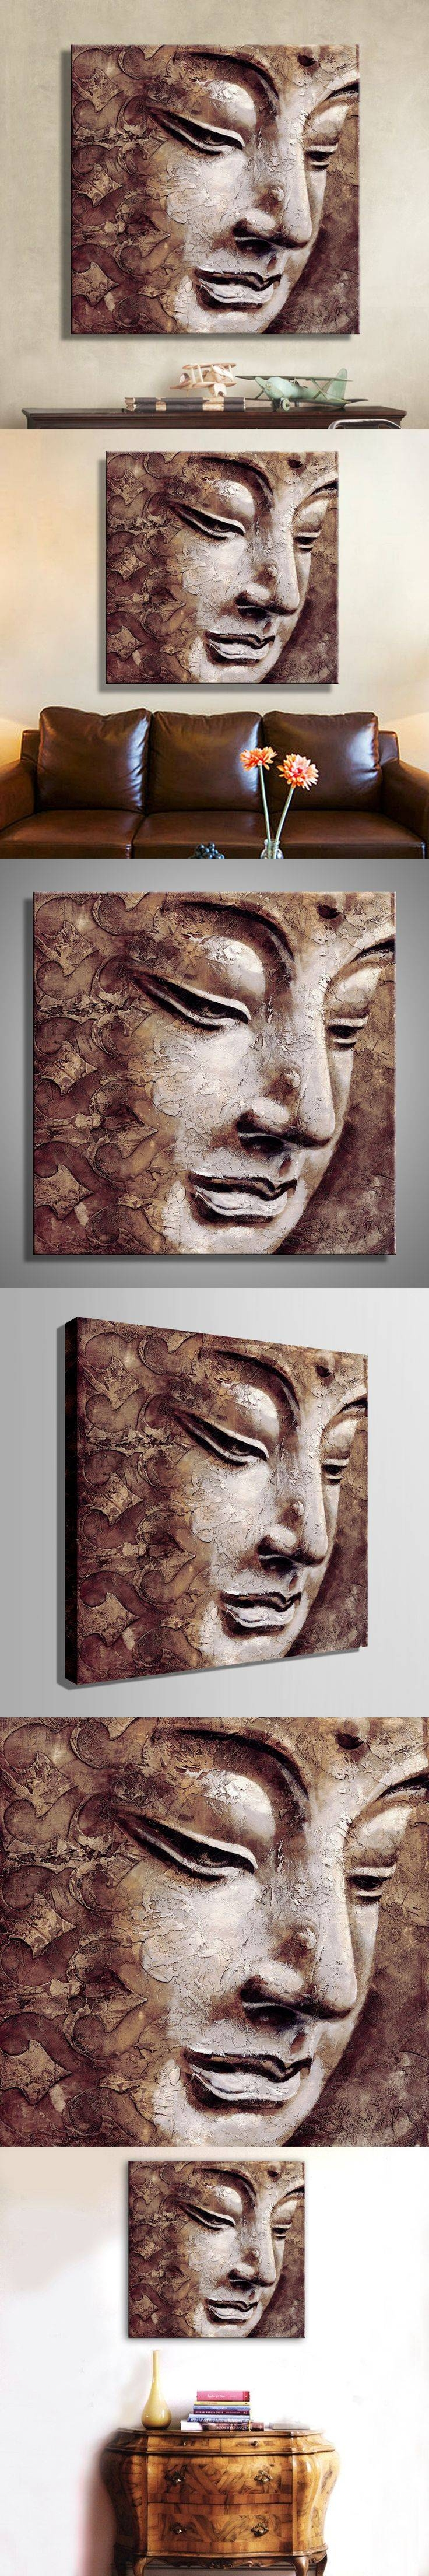 Best 25+ Buddha Wall Art Ideas On Pinterest | Yoga Rooms, Yoga Inside Most Recent 3d Buddha Wall Art (View 13 of 20)